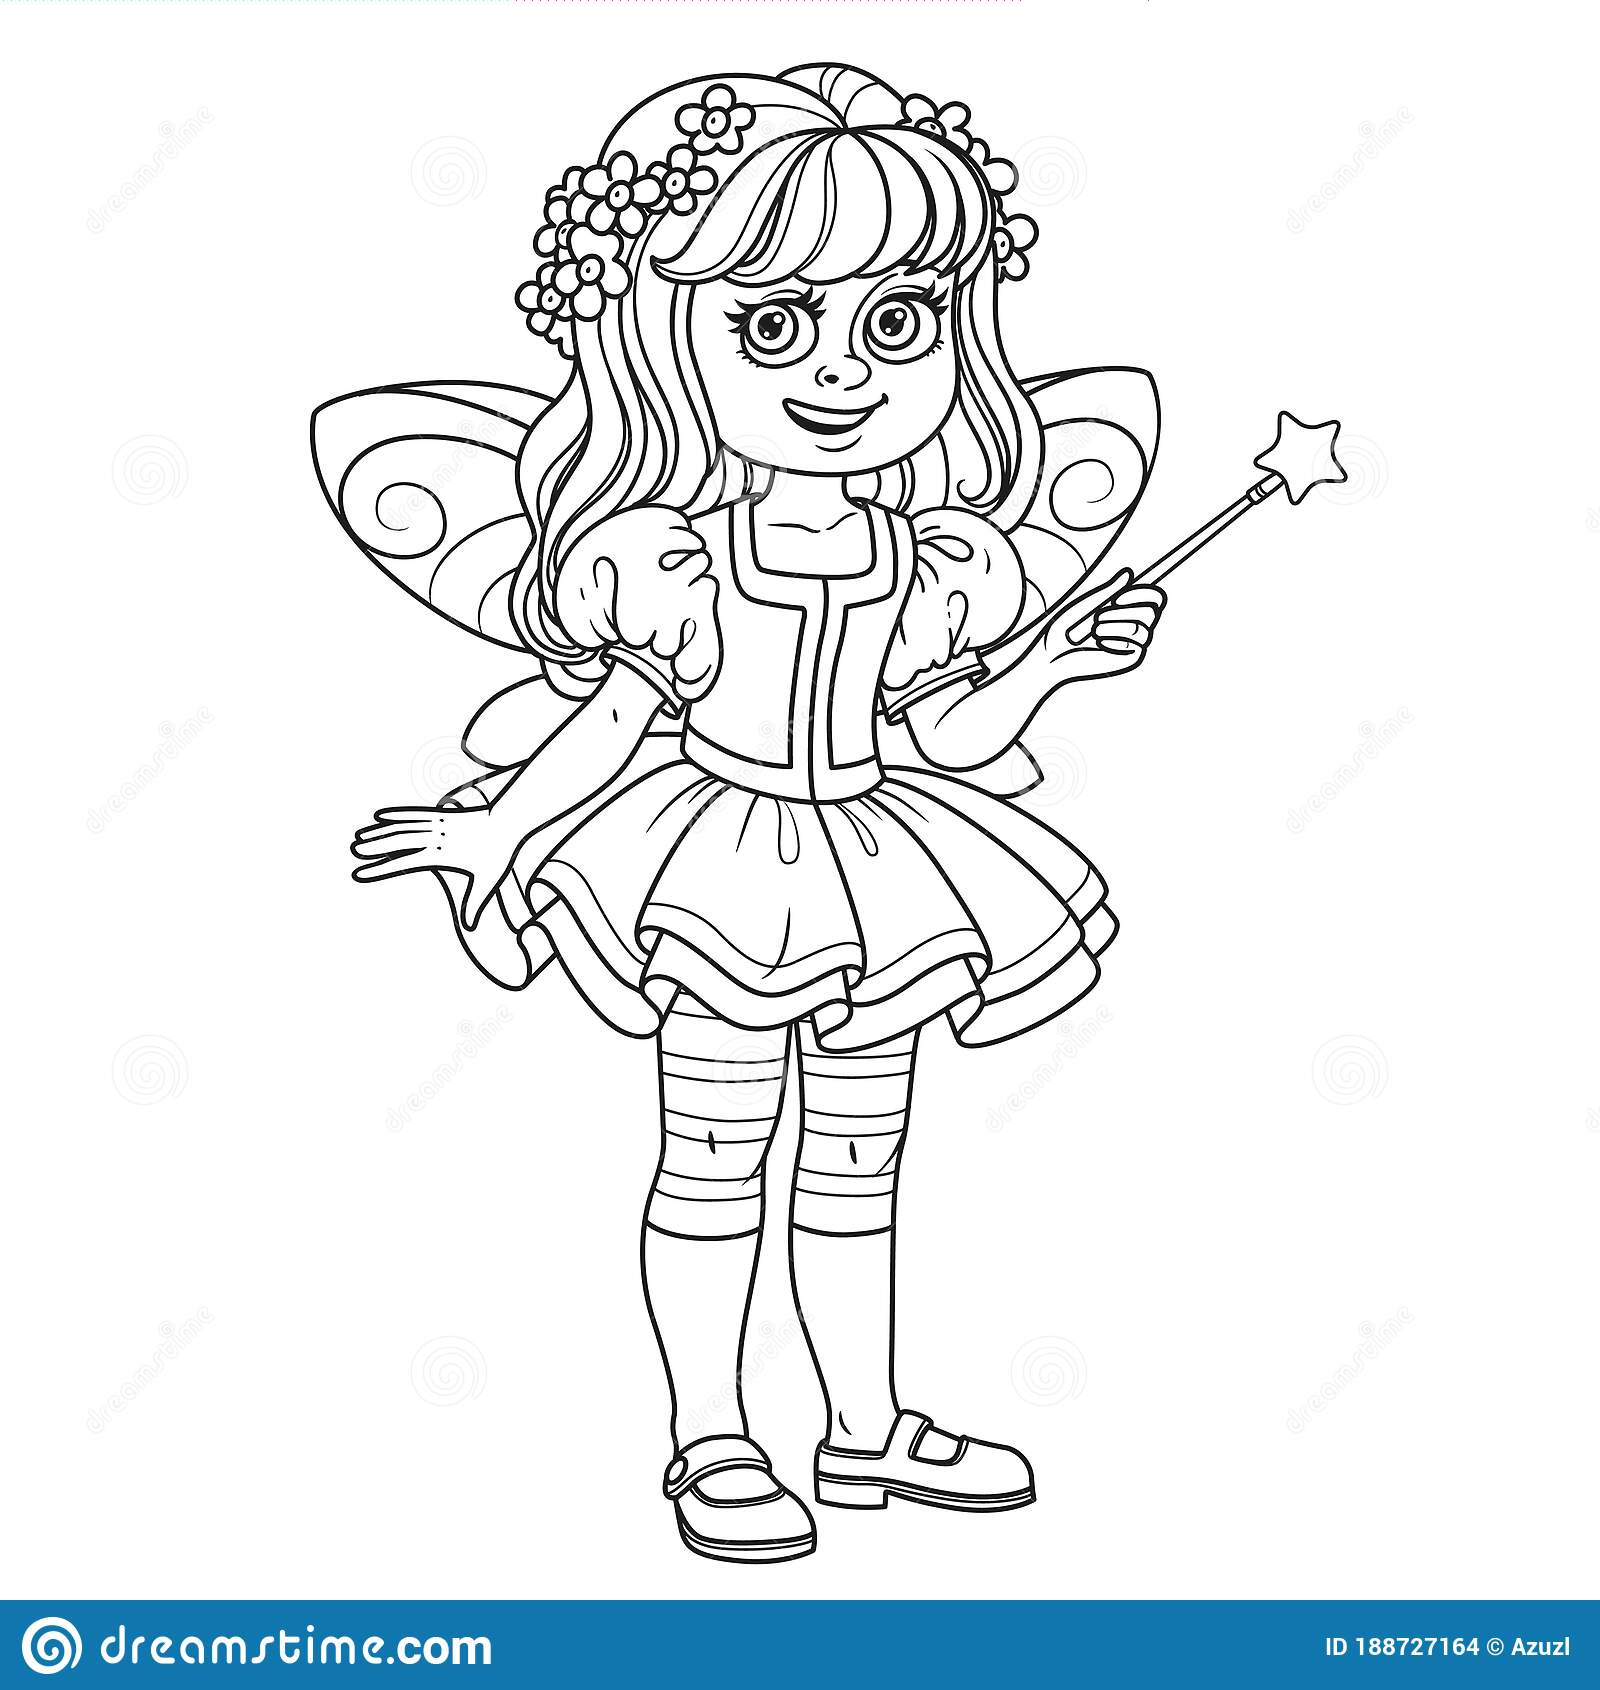 Magic Wand Coloring Page Stock Illustrations 271 Magic Wand Coloring Page Stock Illustrations Vectors Clipart Dreamstime